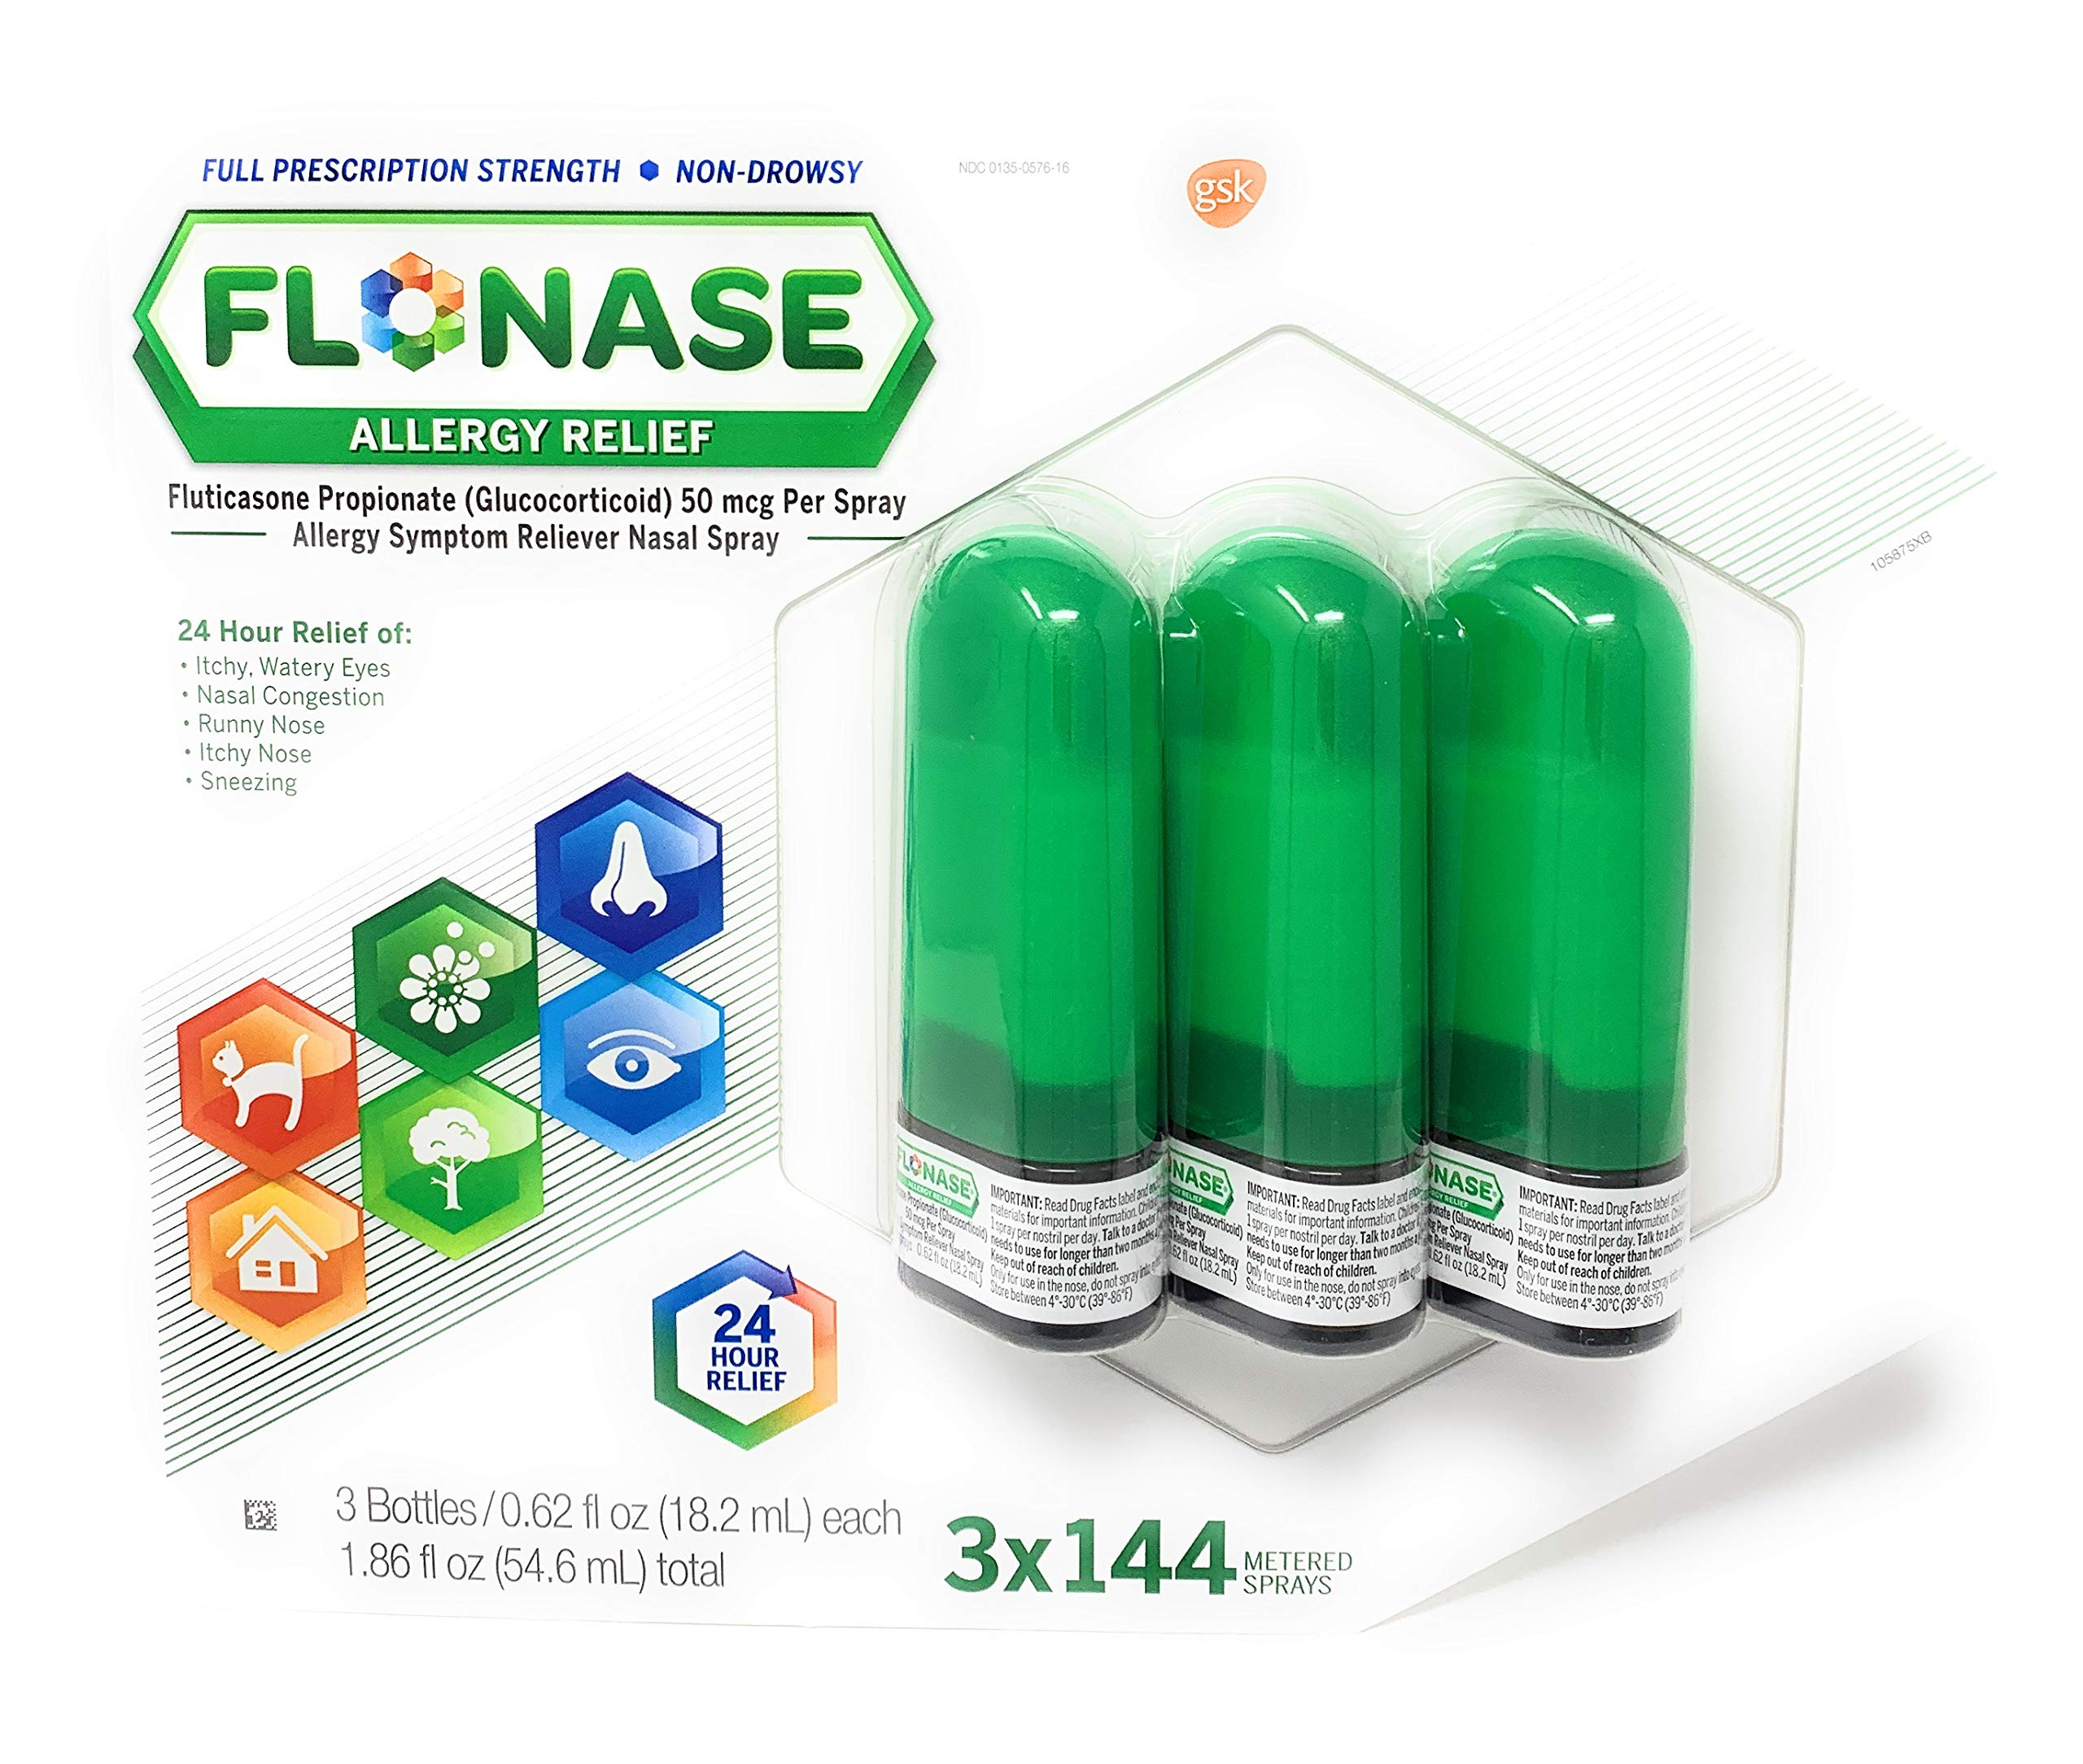 Flonase Allergy Relief Nasal Spray, 432 Sprays by Flonase